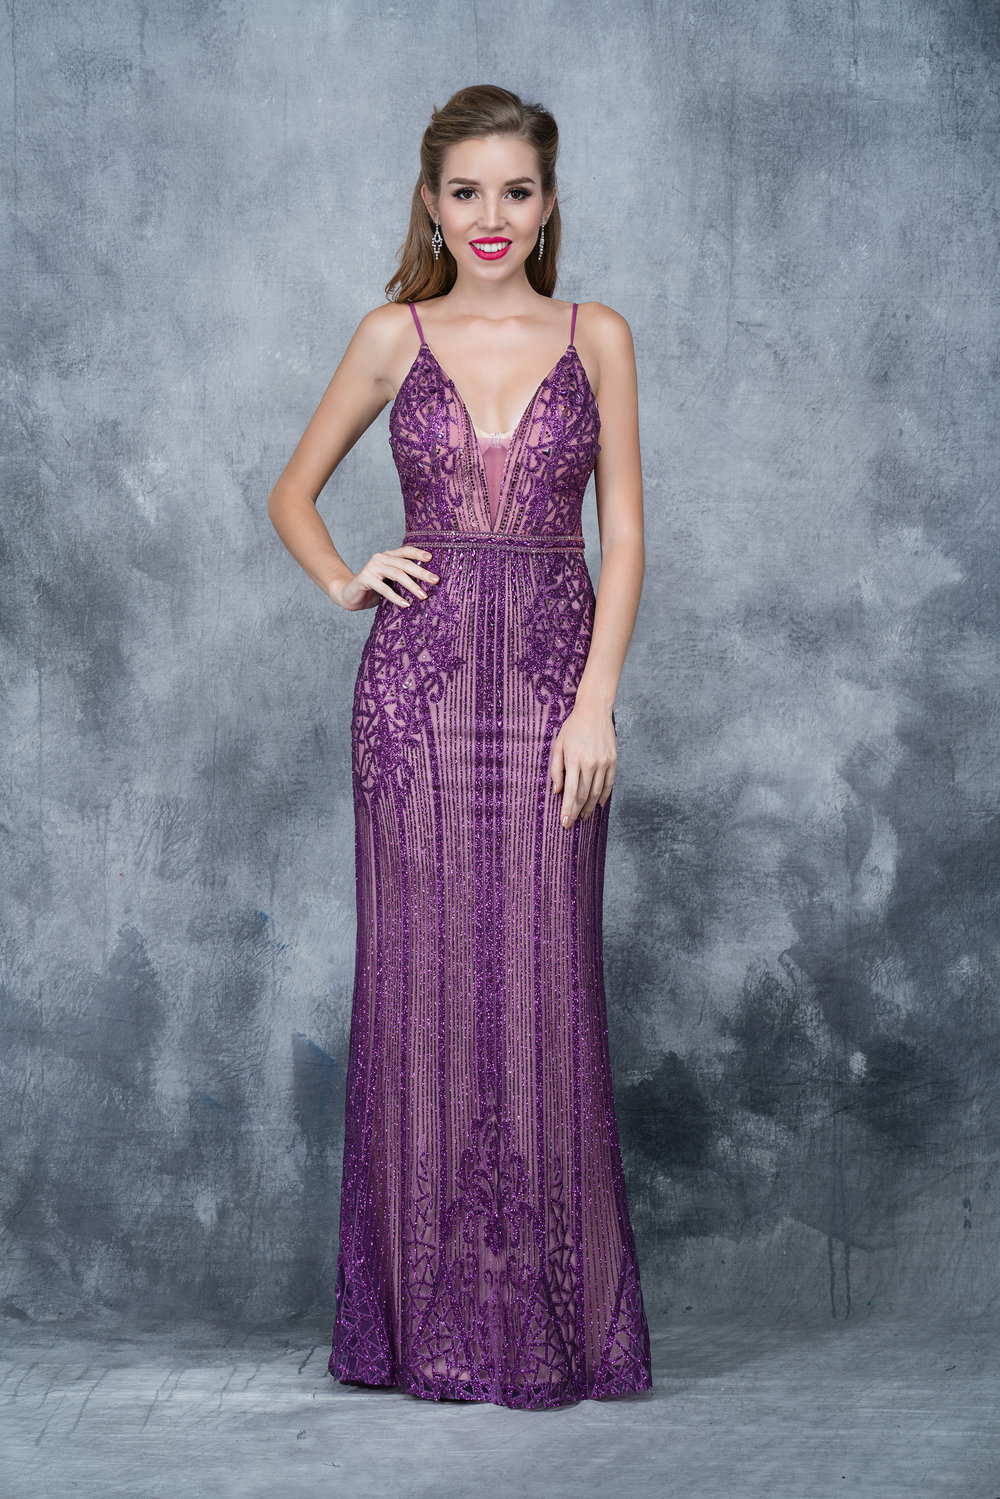 8149_PURPLE NUDE20300 copy.jpg